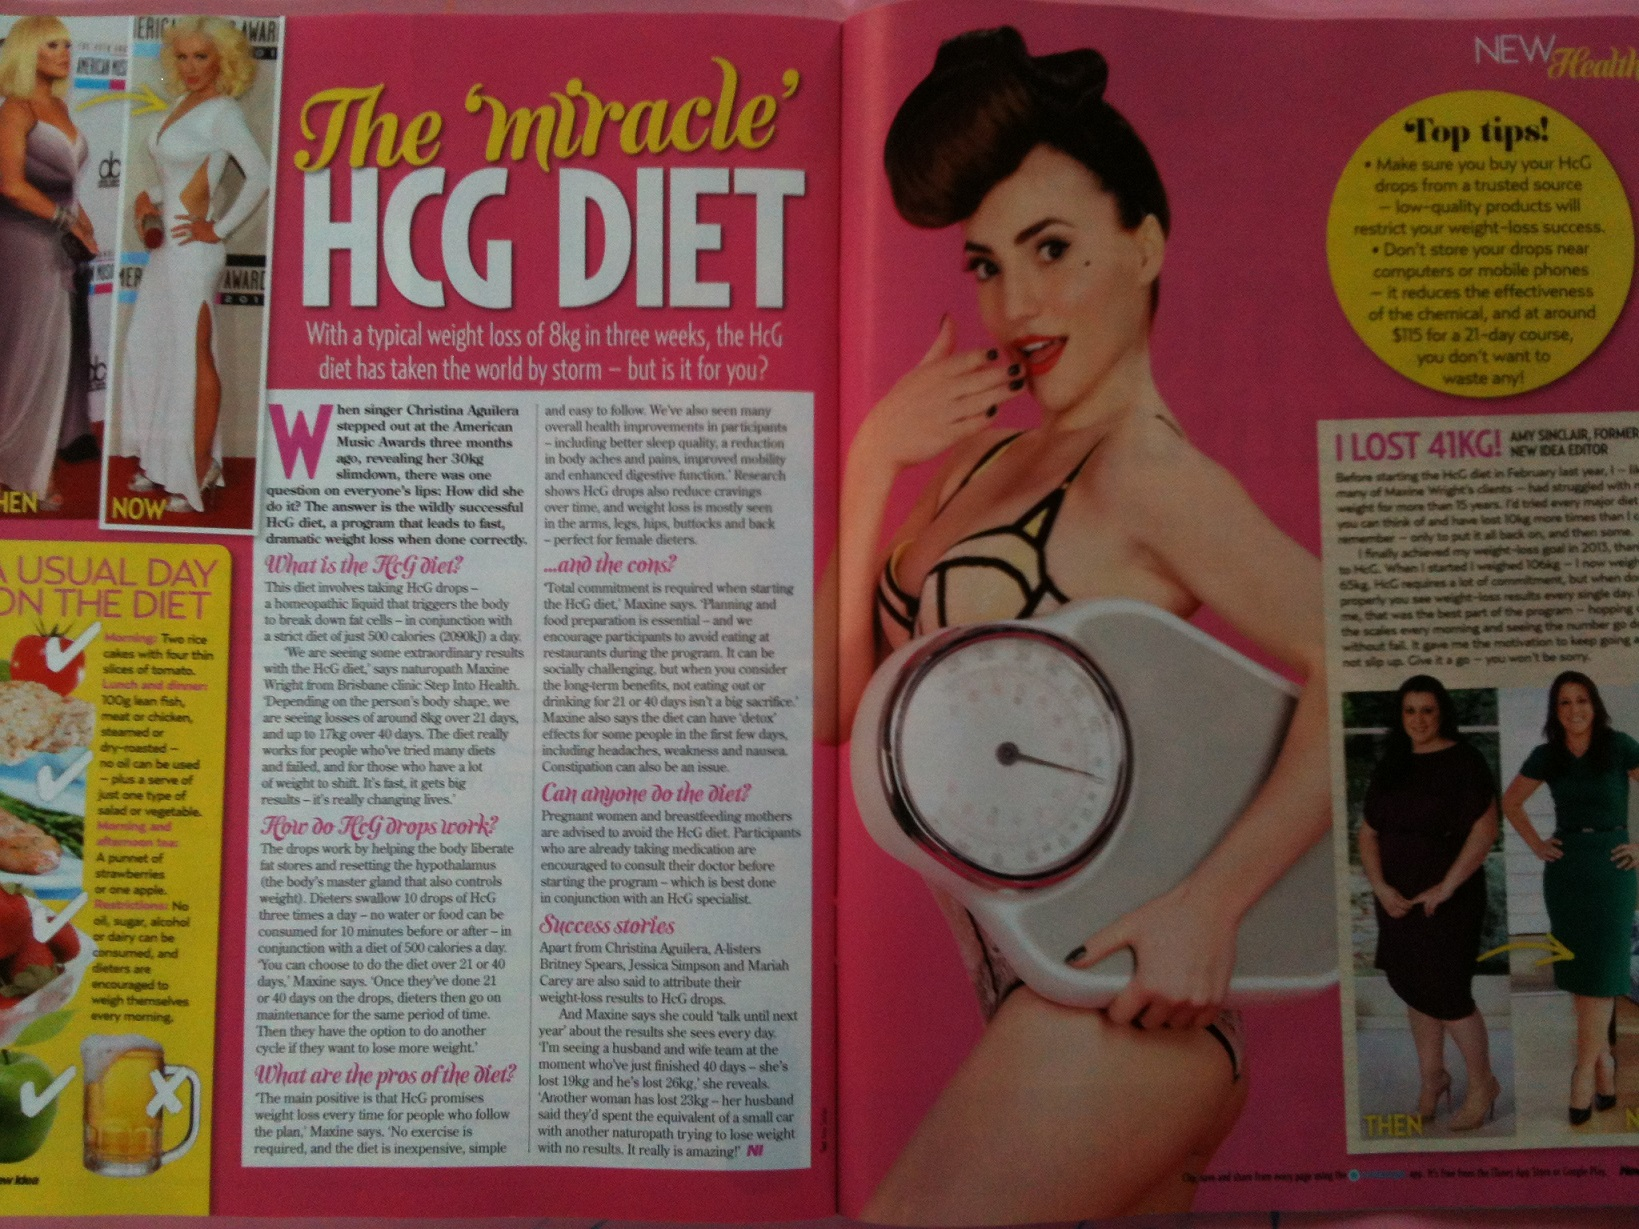 The Miracle HCG Diet